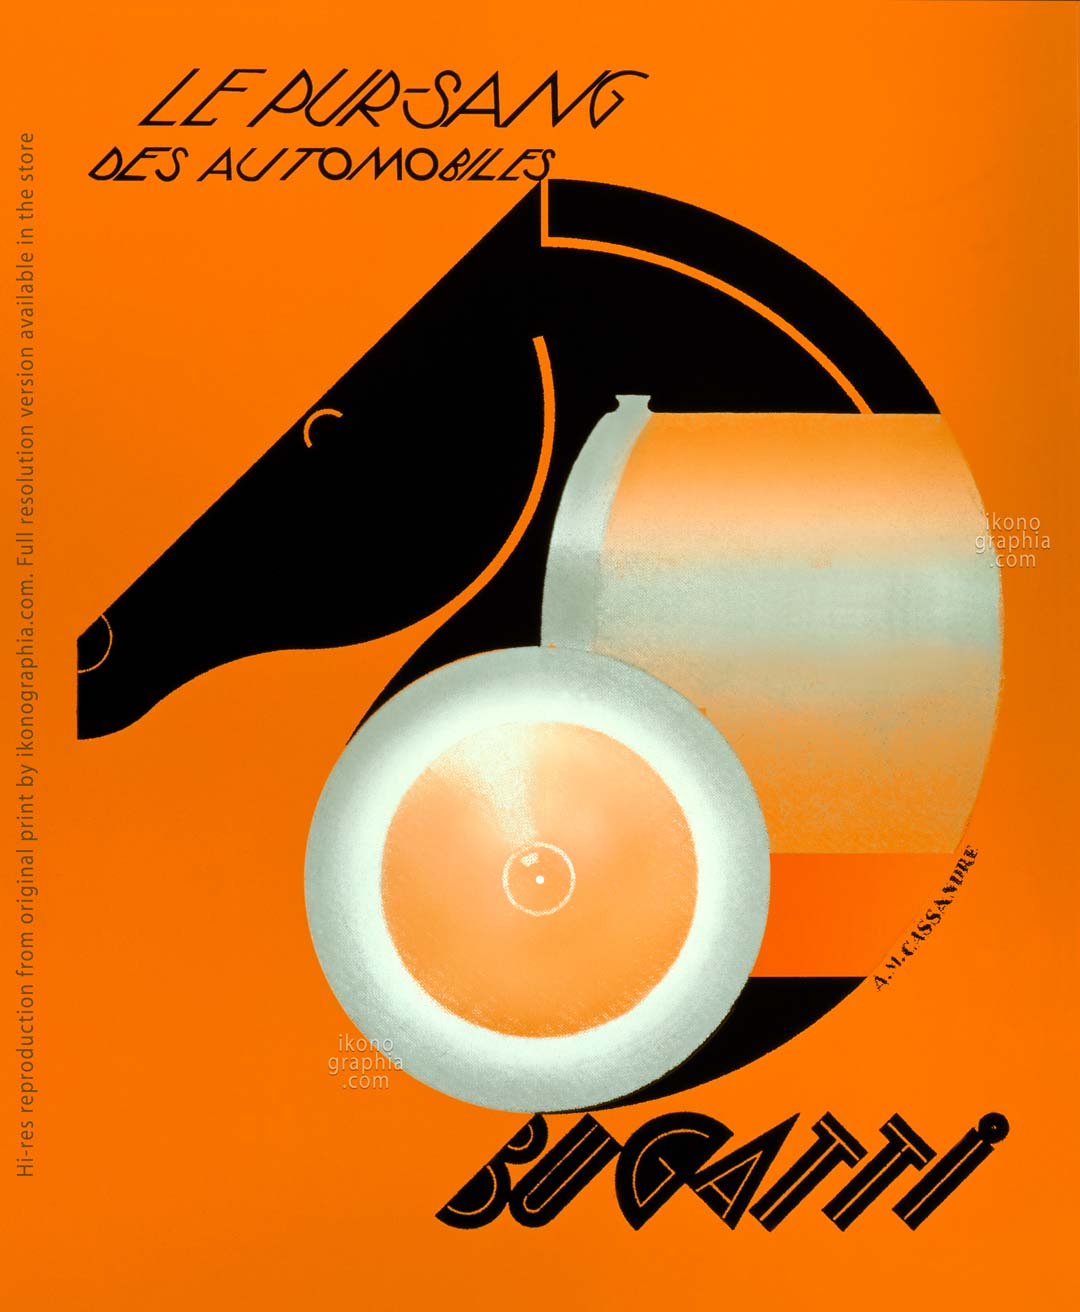 Le Pur-Sang Des Automobiles. Art by Cassandre 1935. An iconic 1935 Bugatti Poster by Cassandre, pseudonym of Adolphe Jean-Marie Mouron.